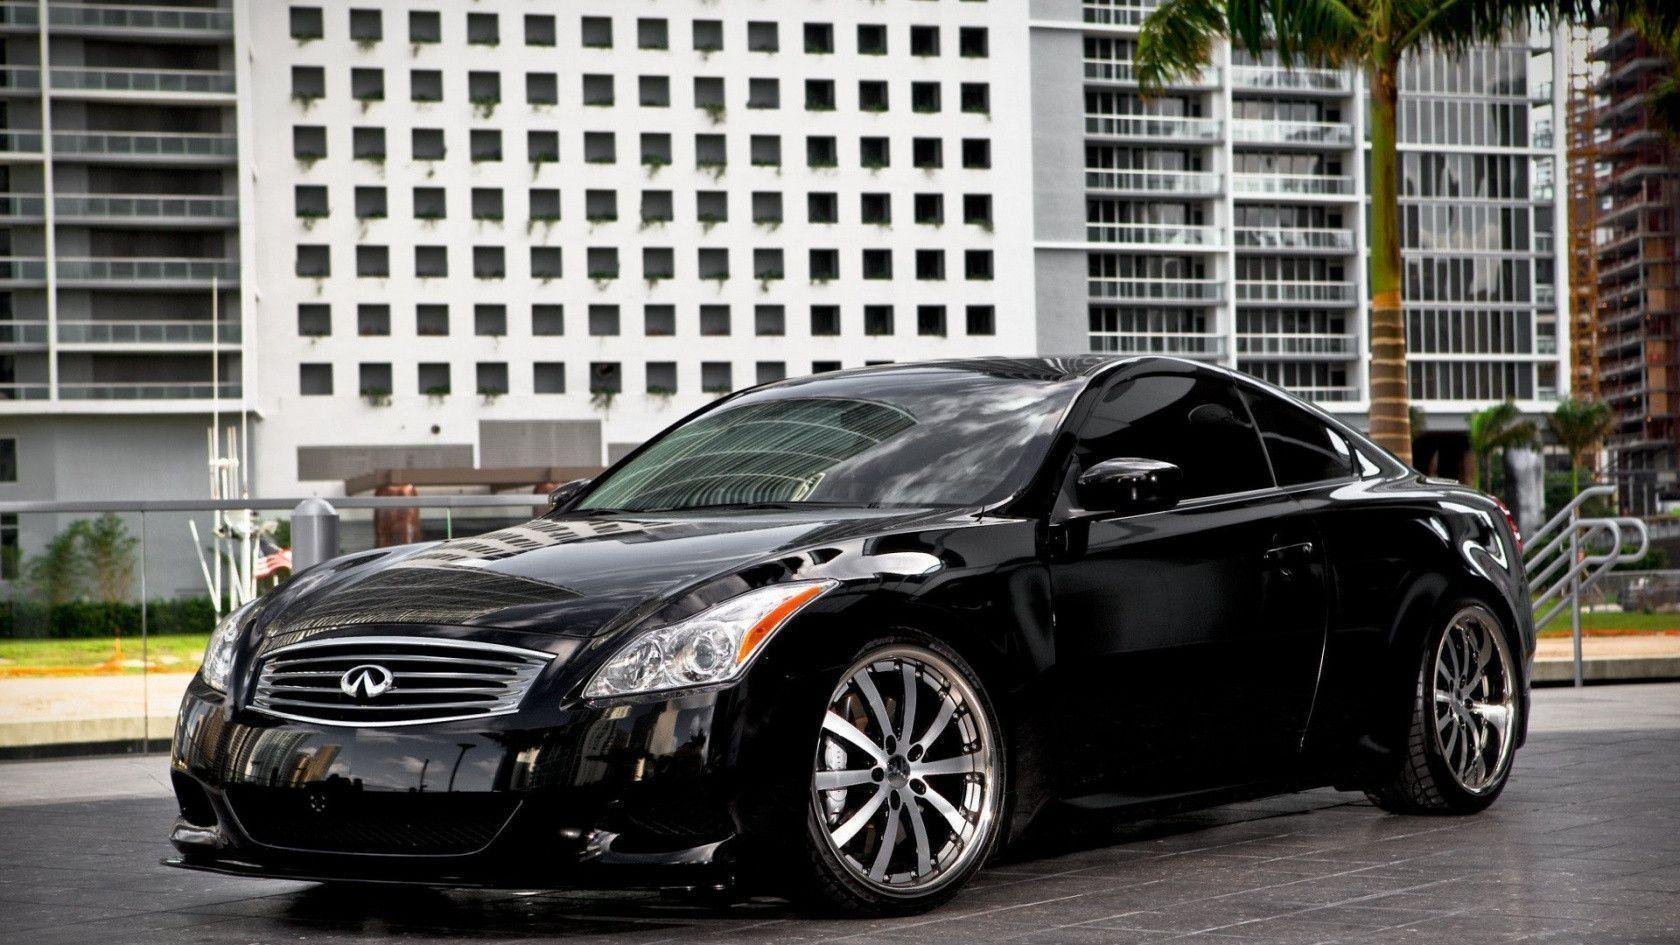 Infiniti G37 Wallpapers Wallpaper Cave